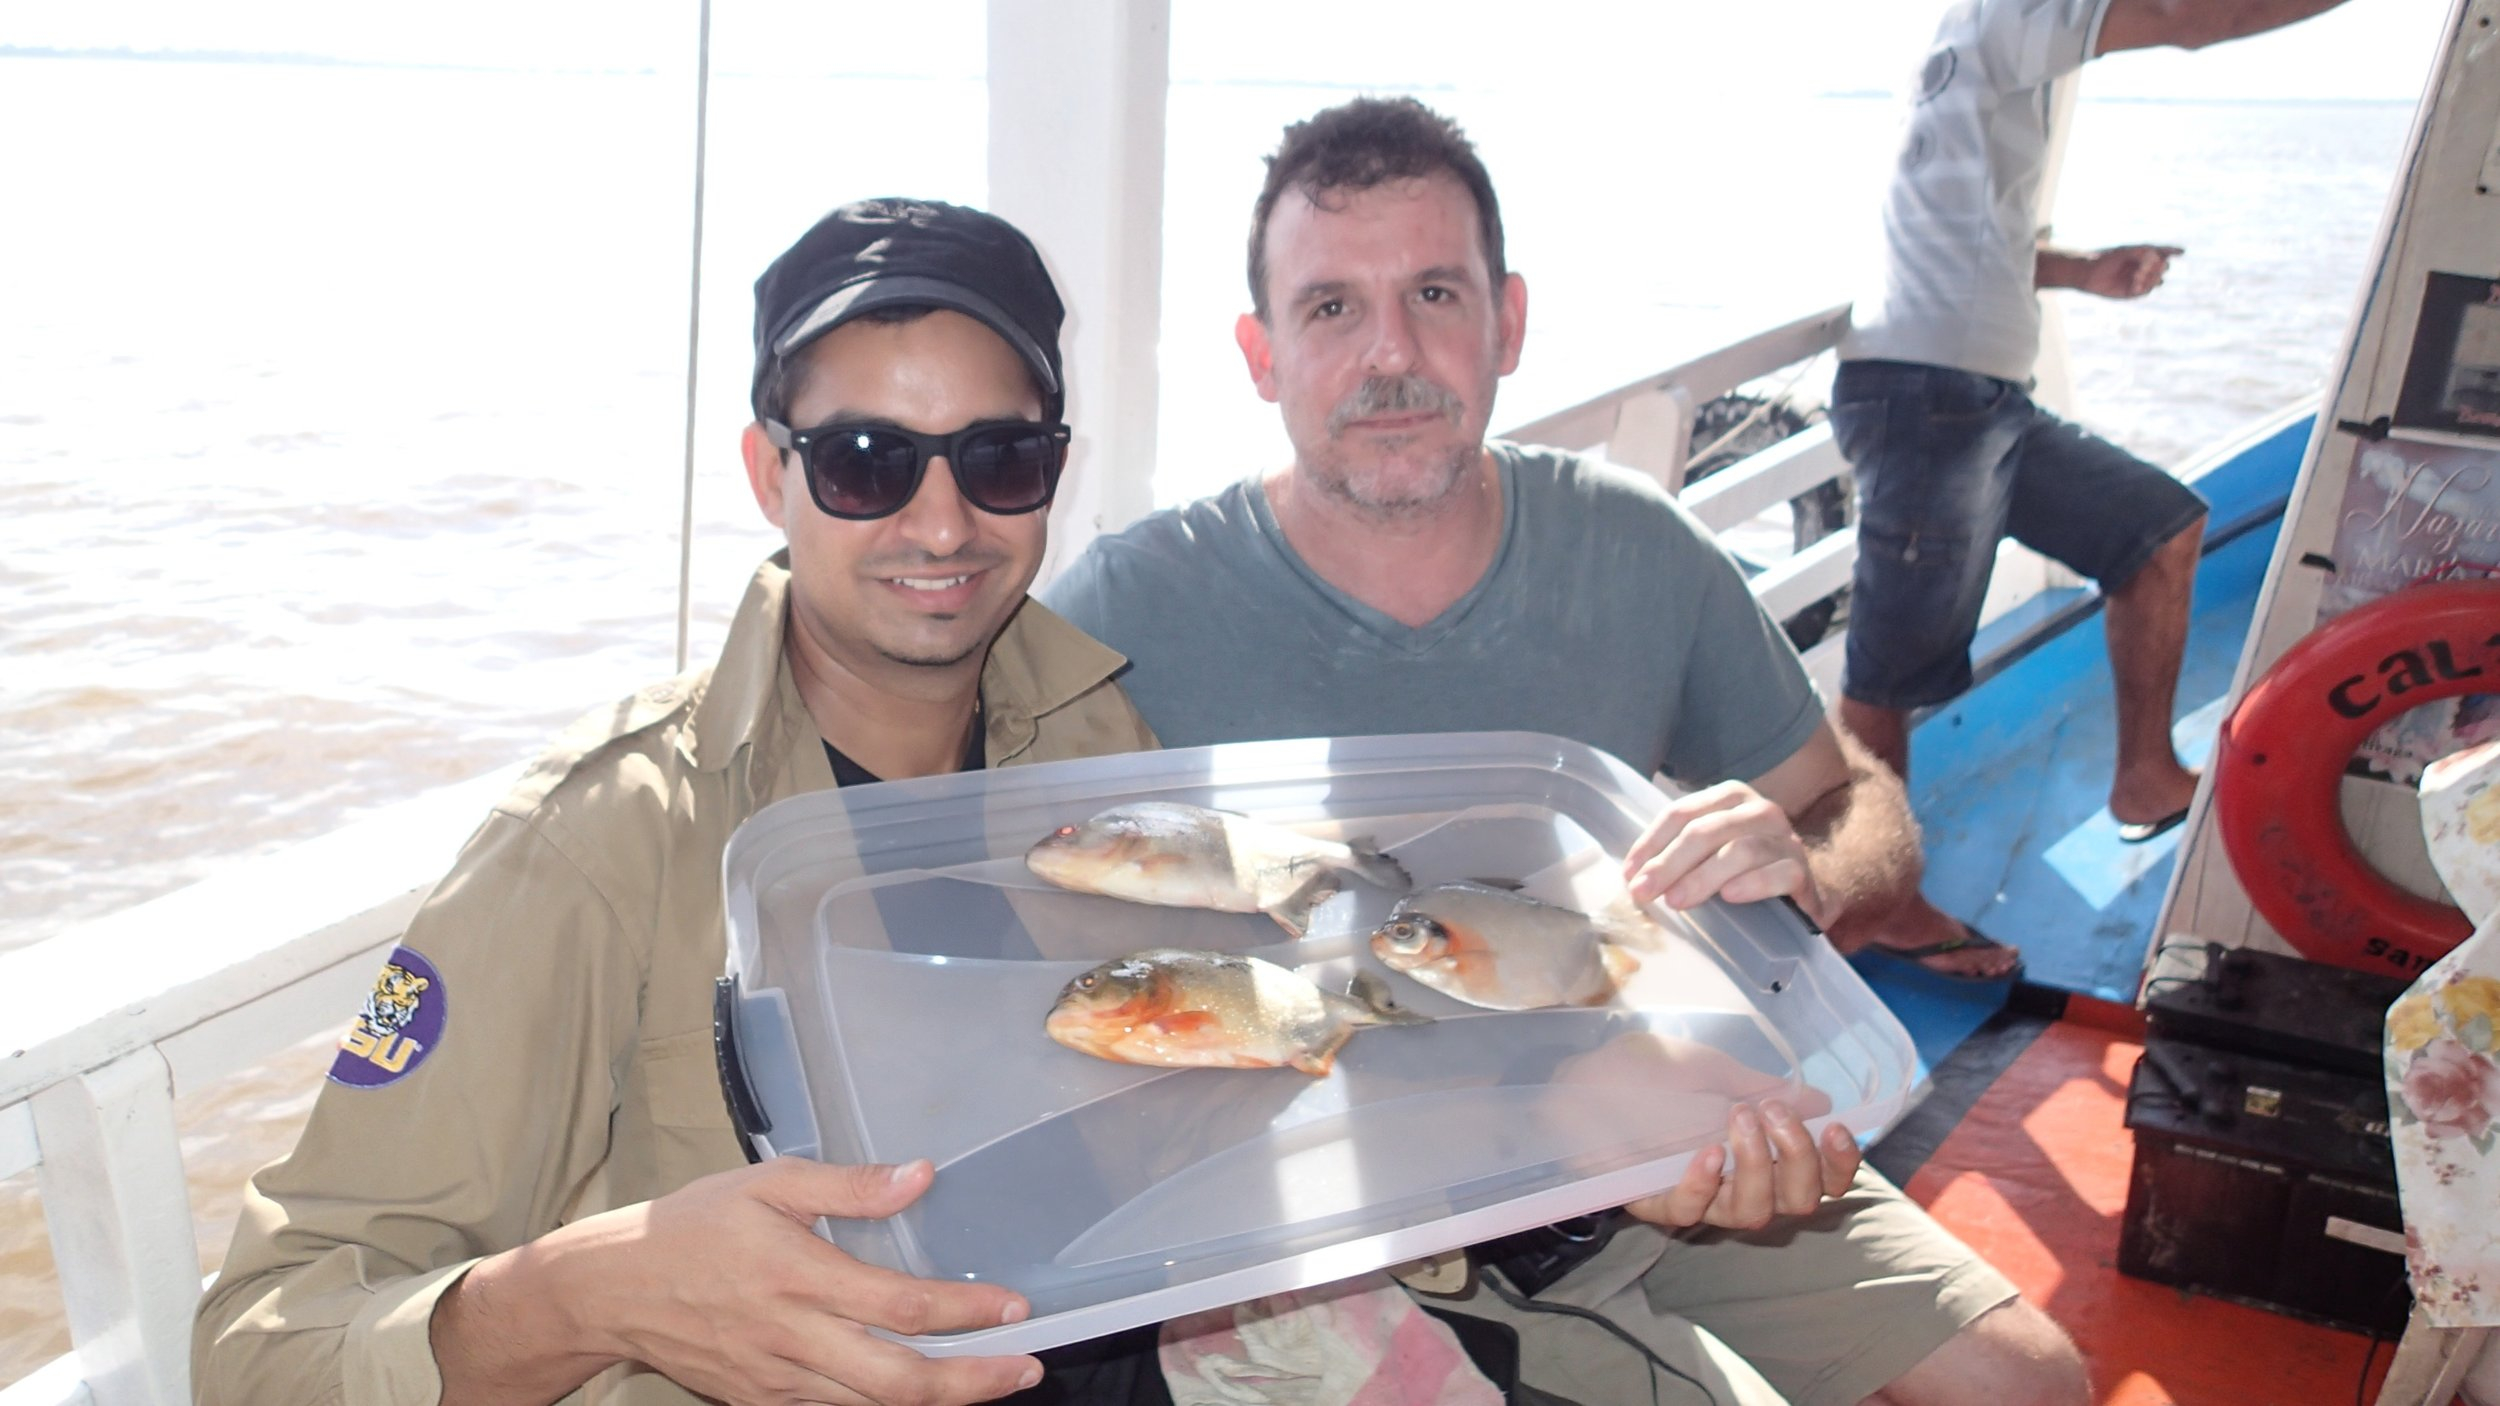 A photo of Prosanta Chakrabarty and collaborator James Albert with fish they collected during a field expedition on the Brazilian Amazon.